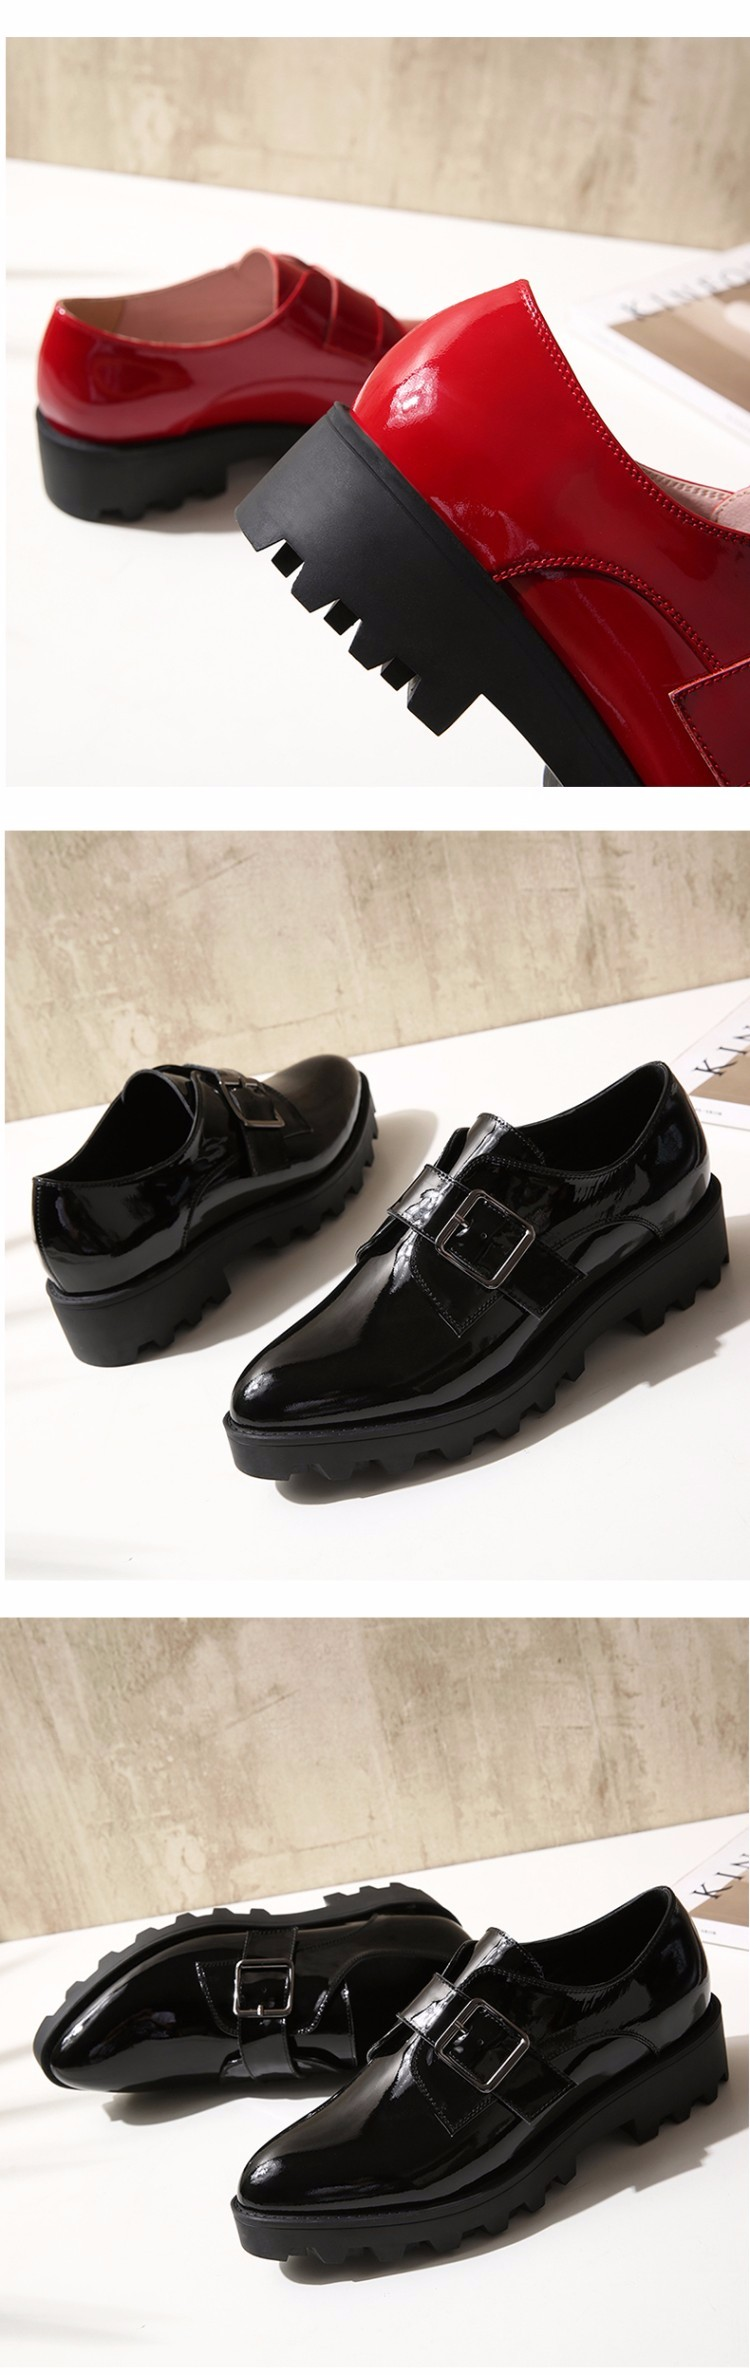 Patent leather Flat Oxford Shoes Woman Flats 2017 Fashion buckle pointed toe Brogue Oxfords Women Shoes moccasins 827-3